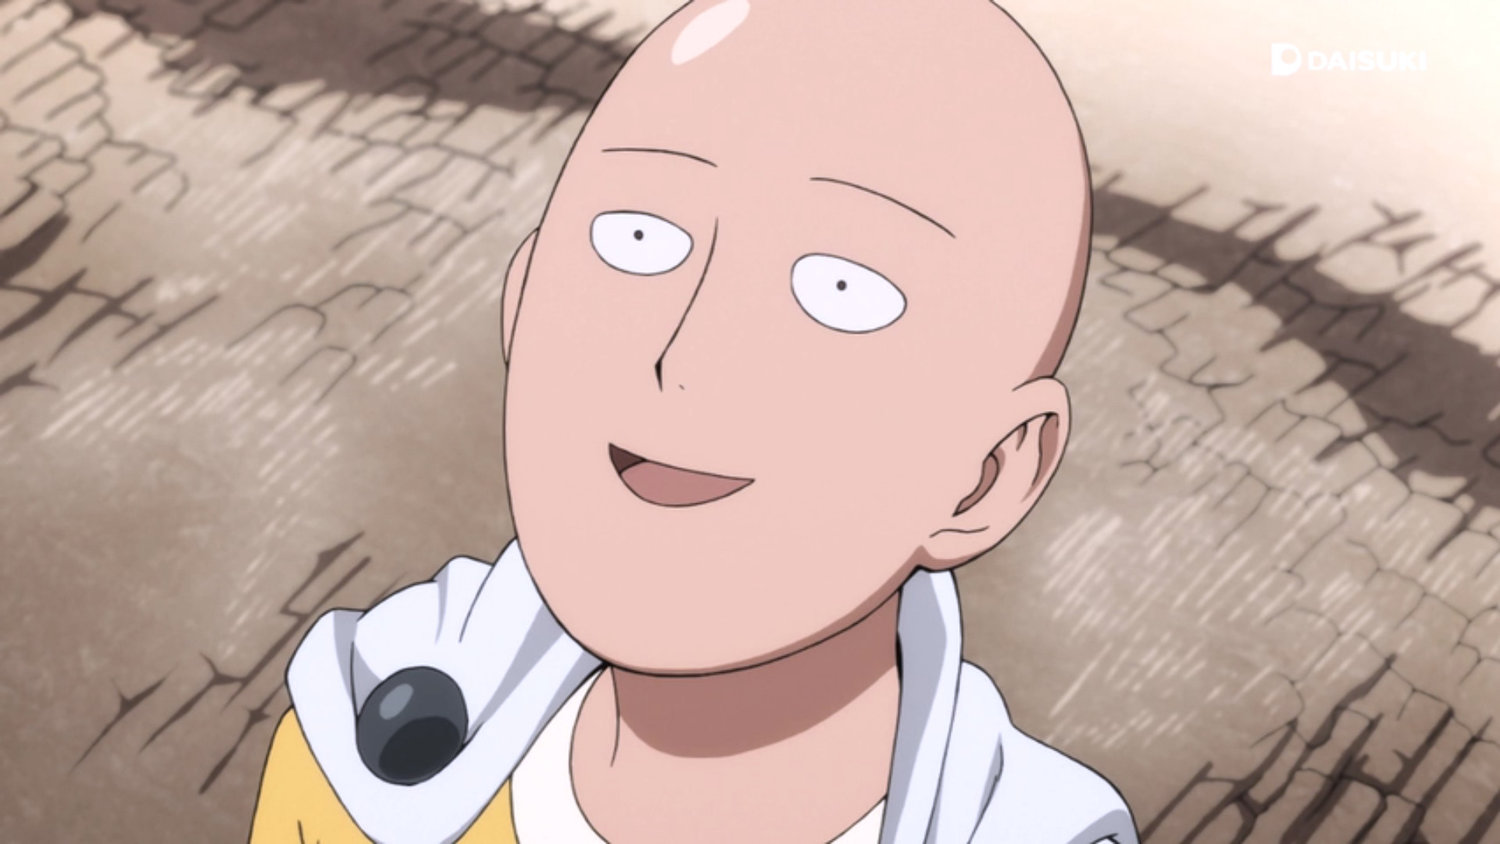 ONE PUNCH MAN Season 2 Is In Production!